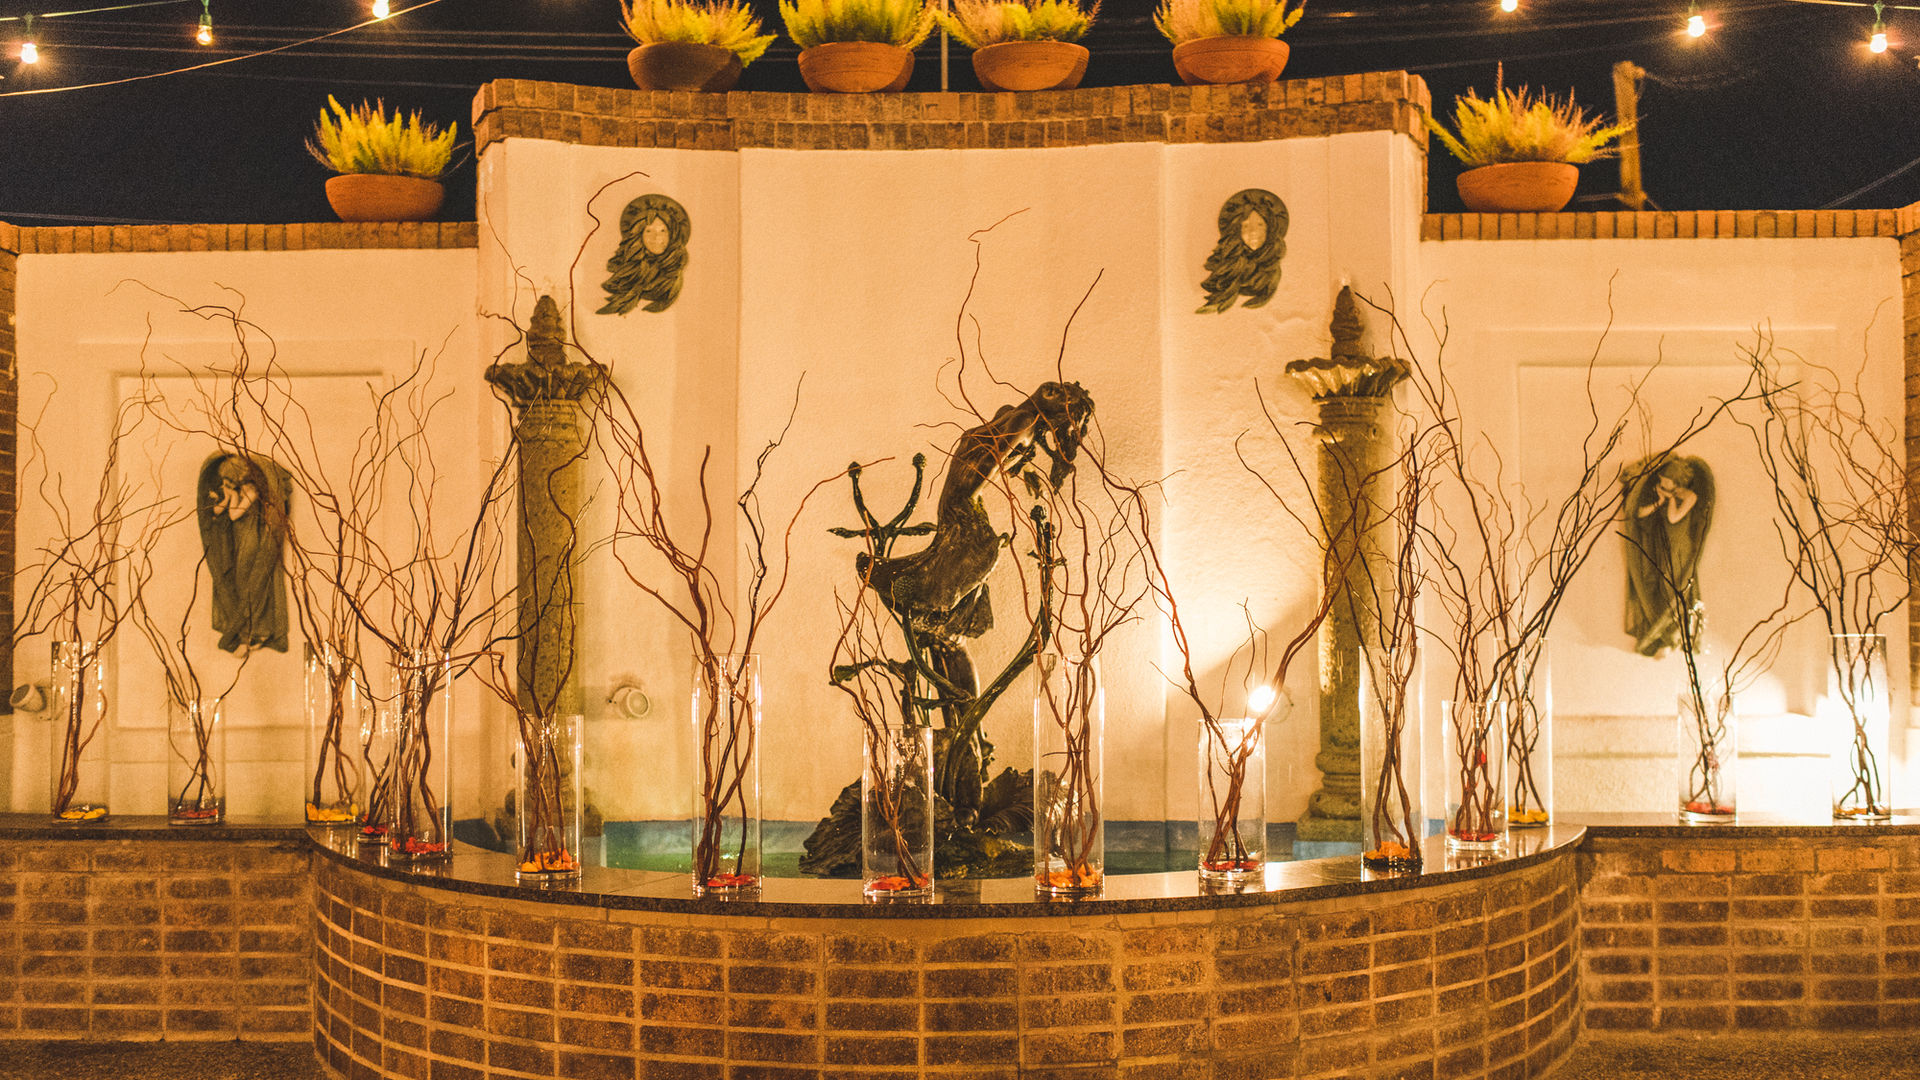 Decorations on the fountain